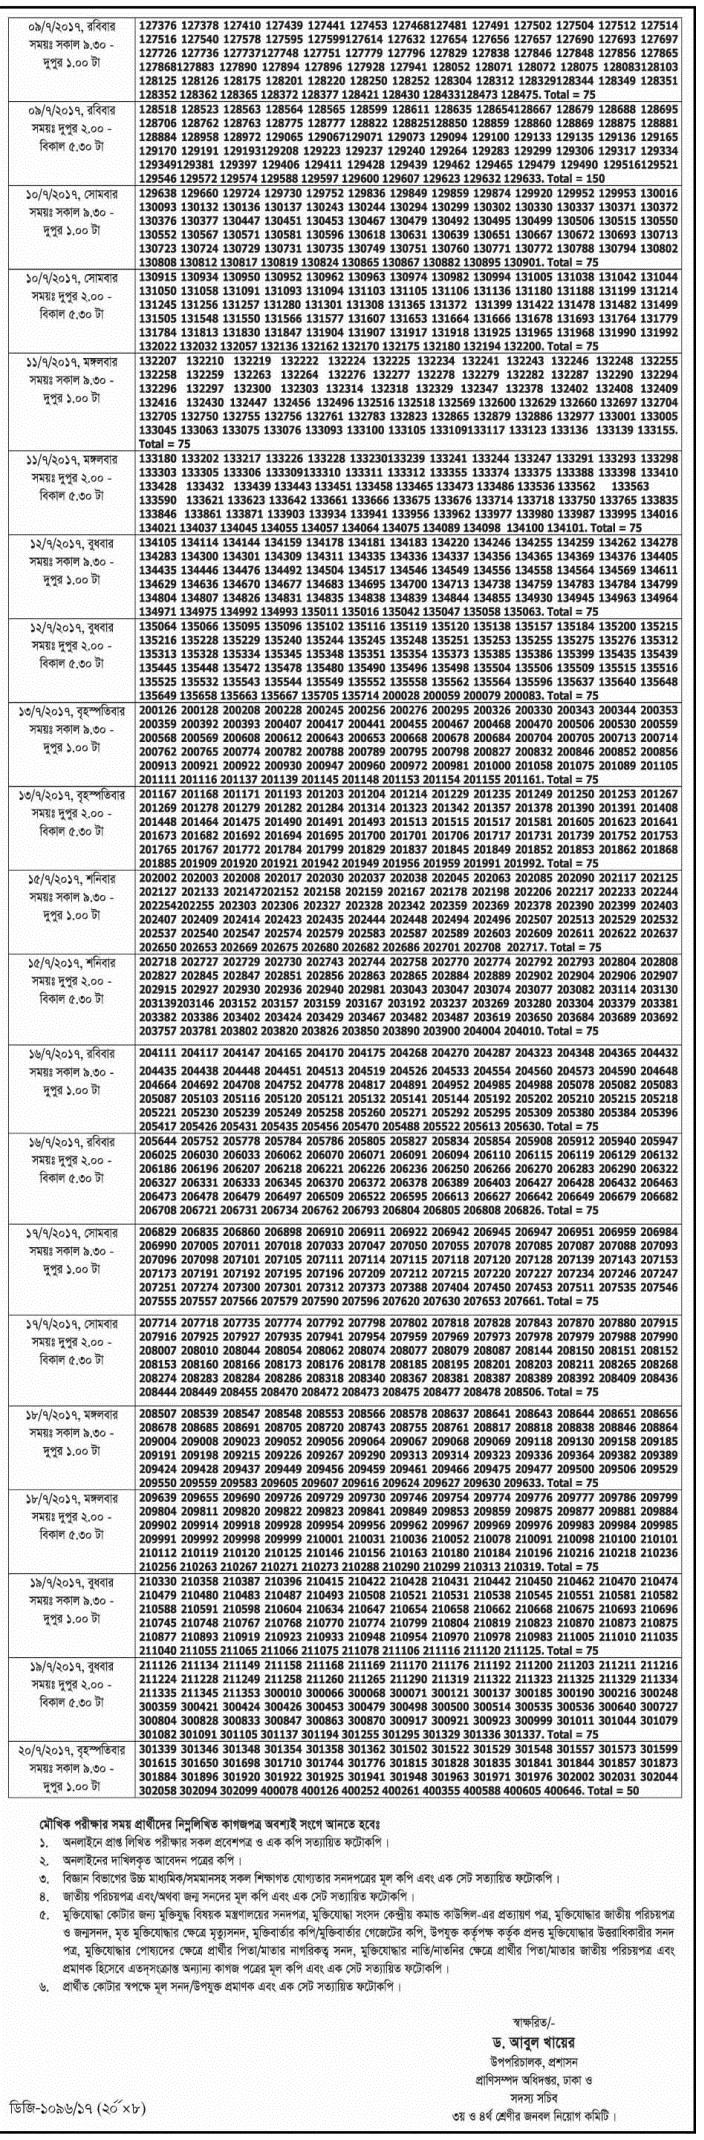 Department of Livelihood Examination Results 2017 Published